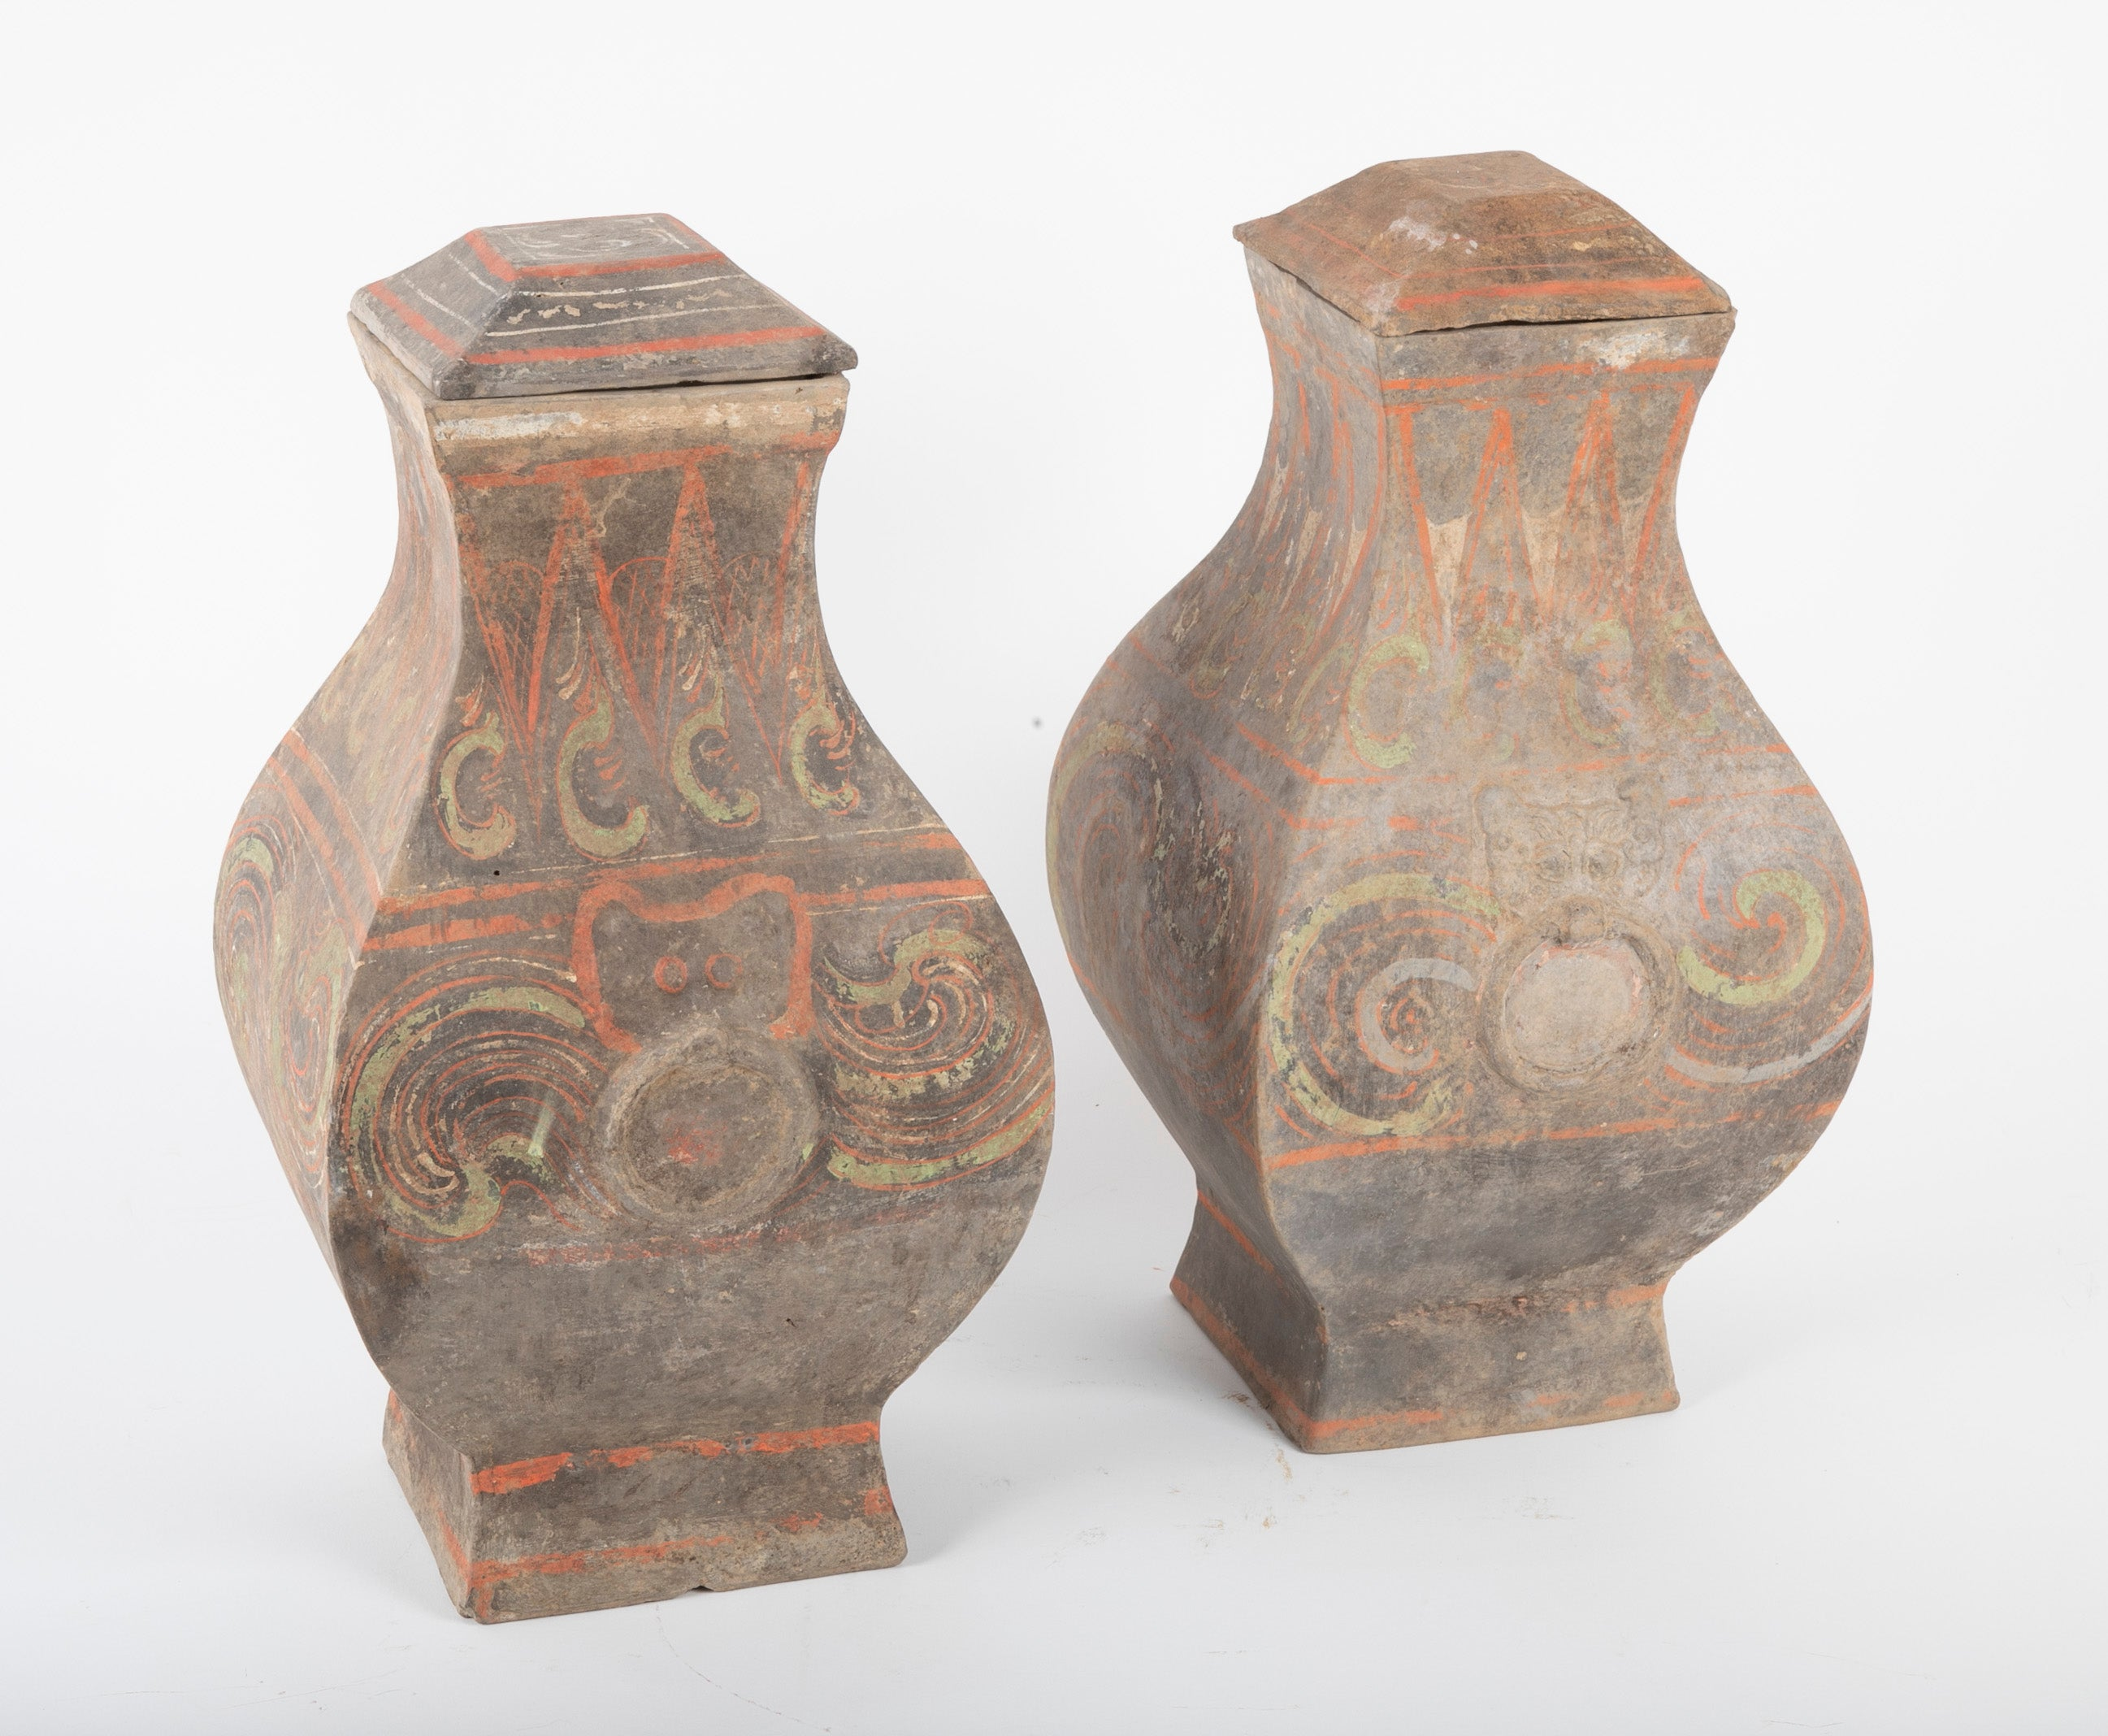 Two Fang Hu Terracotta Han Era Wine Storage Vessels